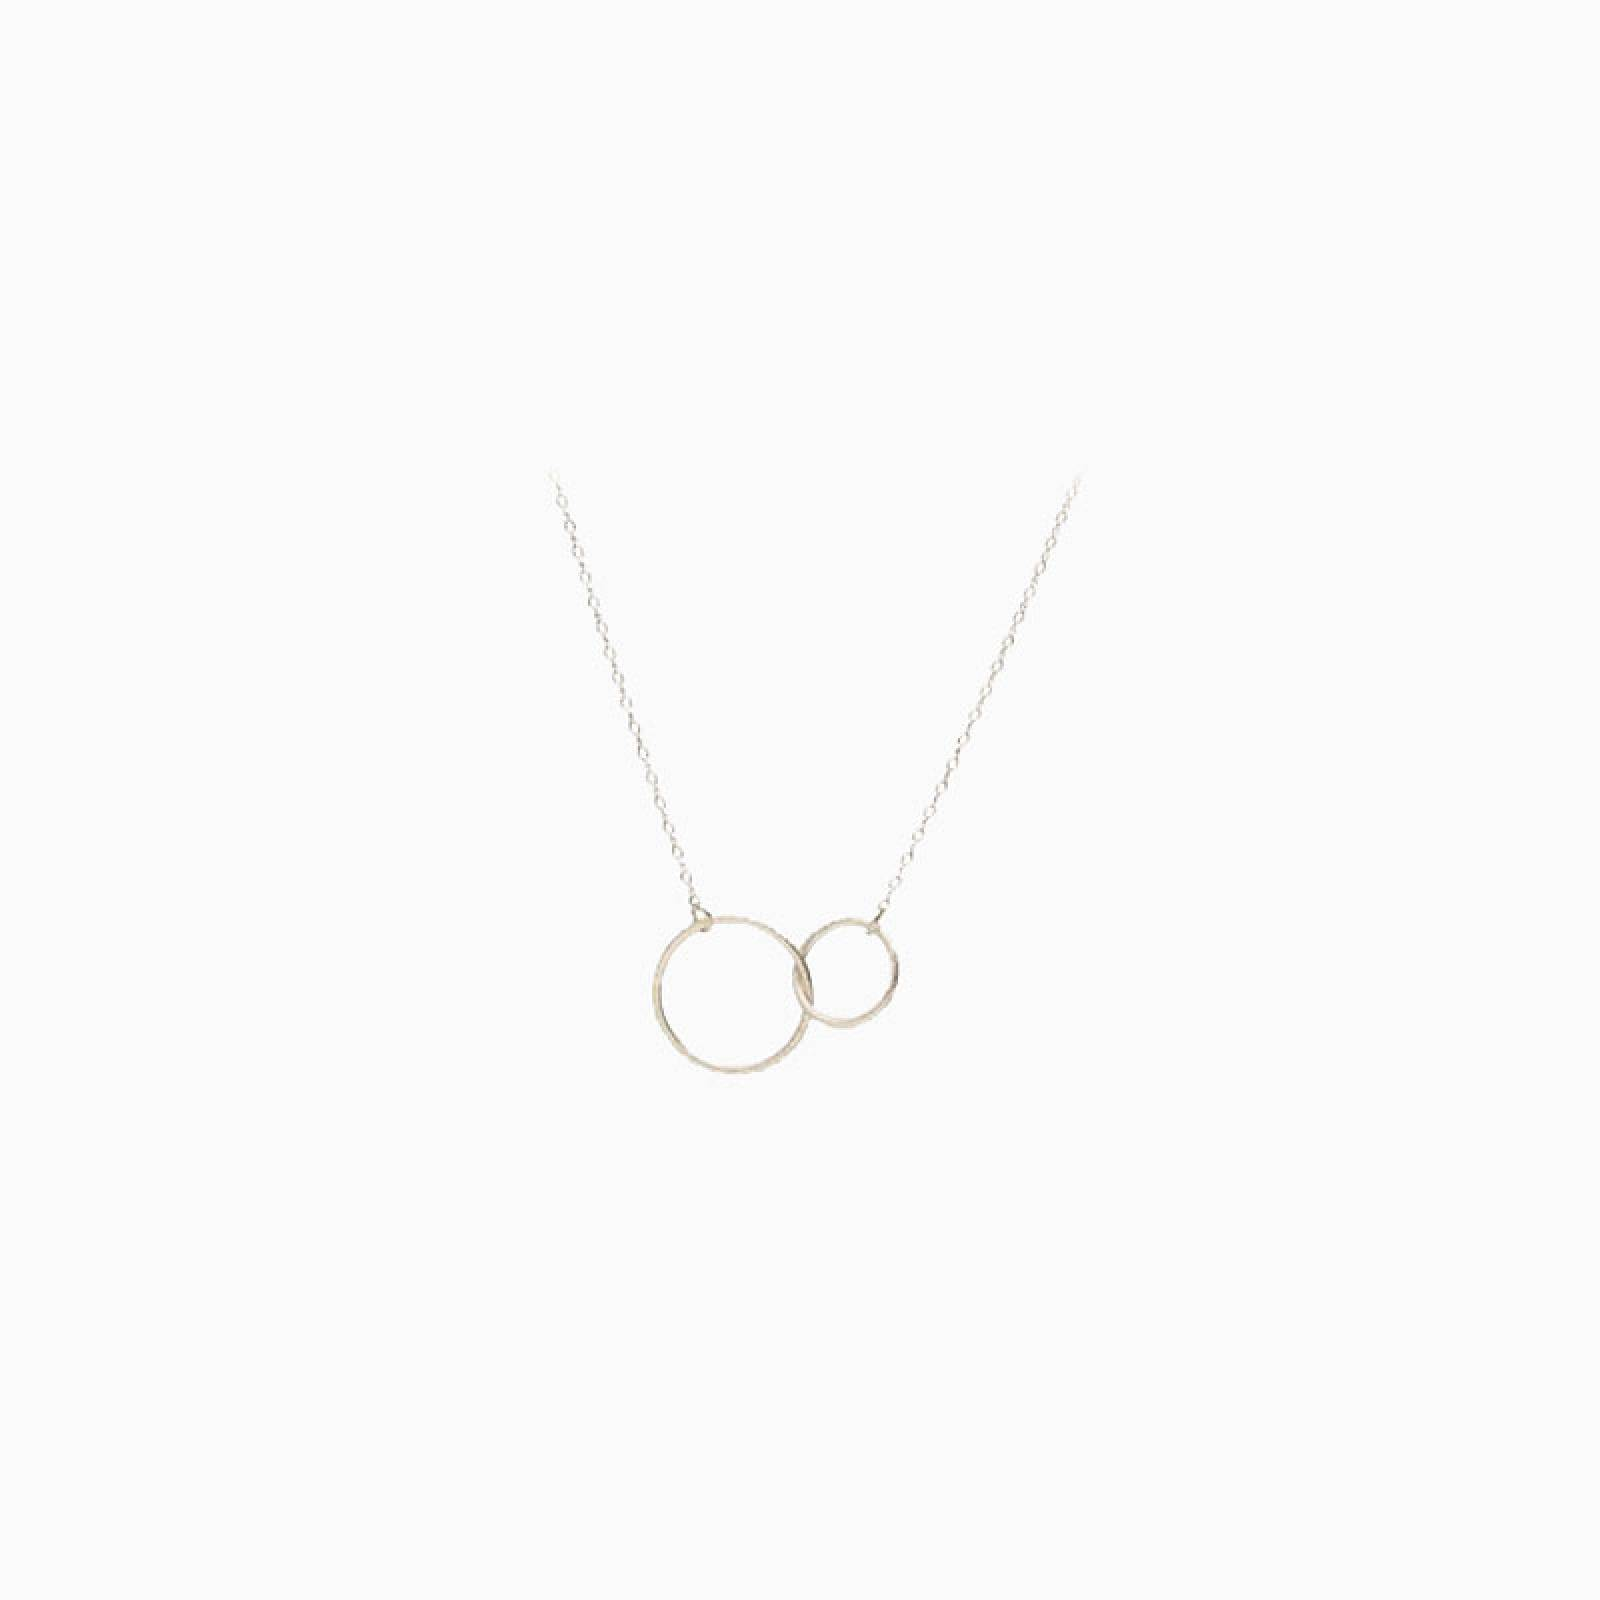 Silver Interlocking Hoop Necklace By Pernille Corydon thumbnails